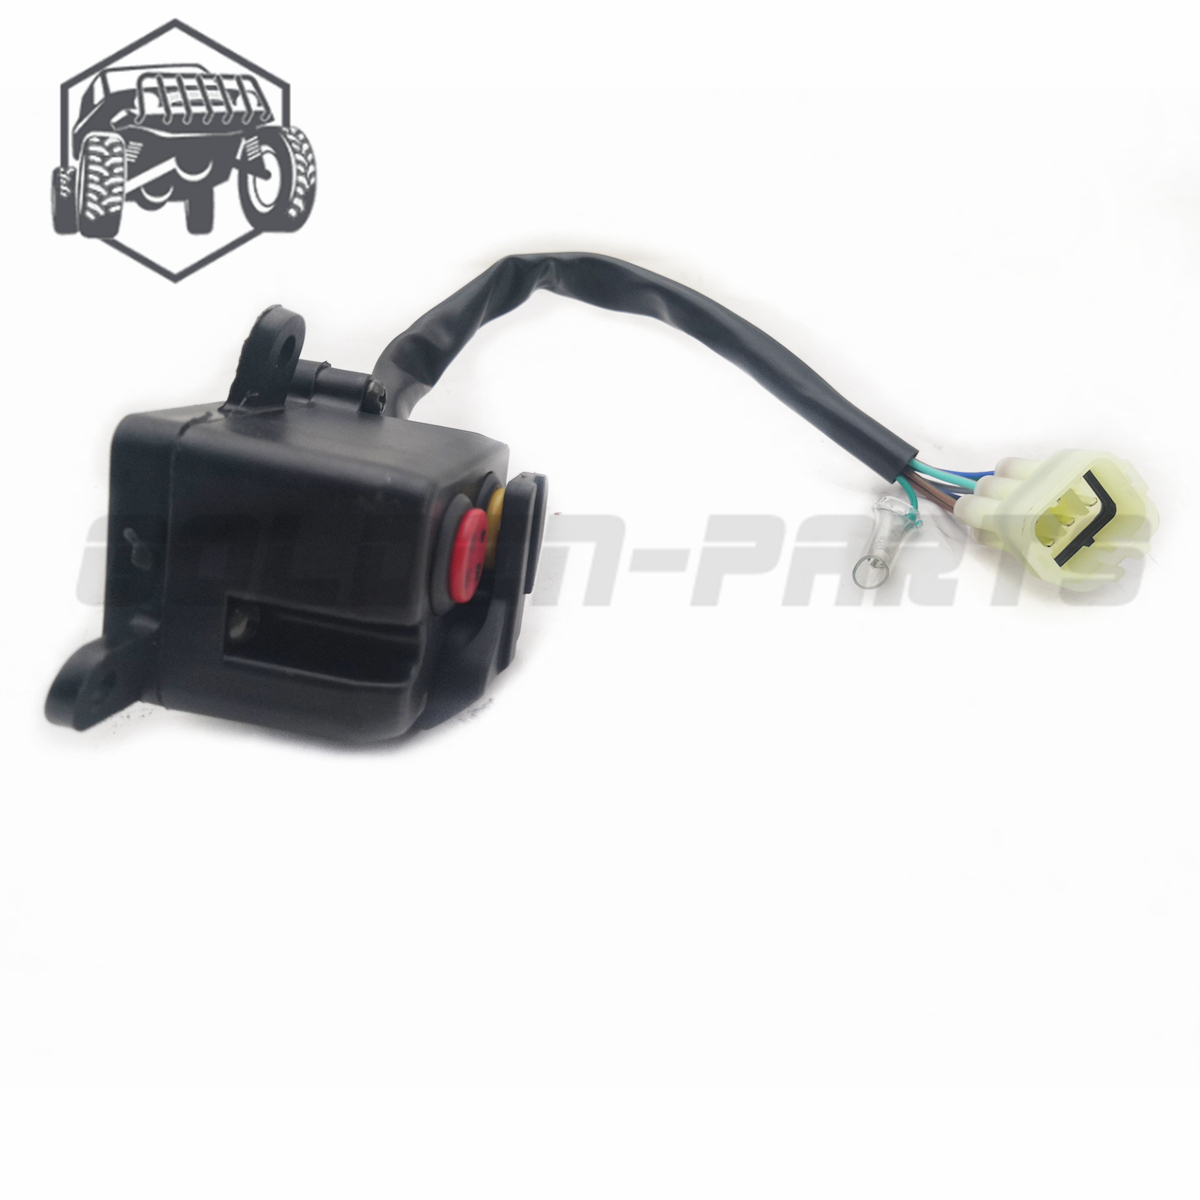 2WD/4WD Switch fit for ODES <font><b>800</b></font> <font><b>UTV</b></font> Side-by-Side 10909320000 image